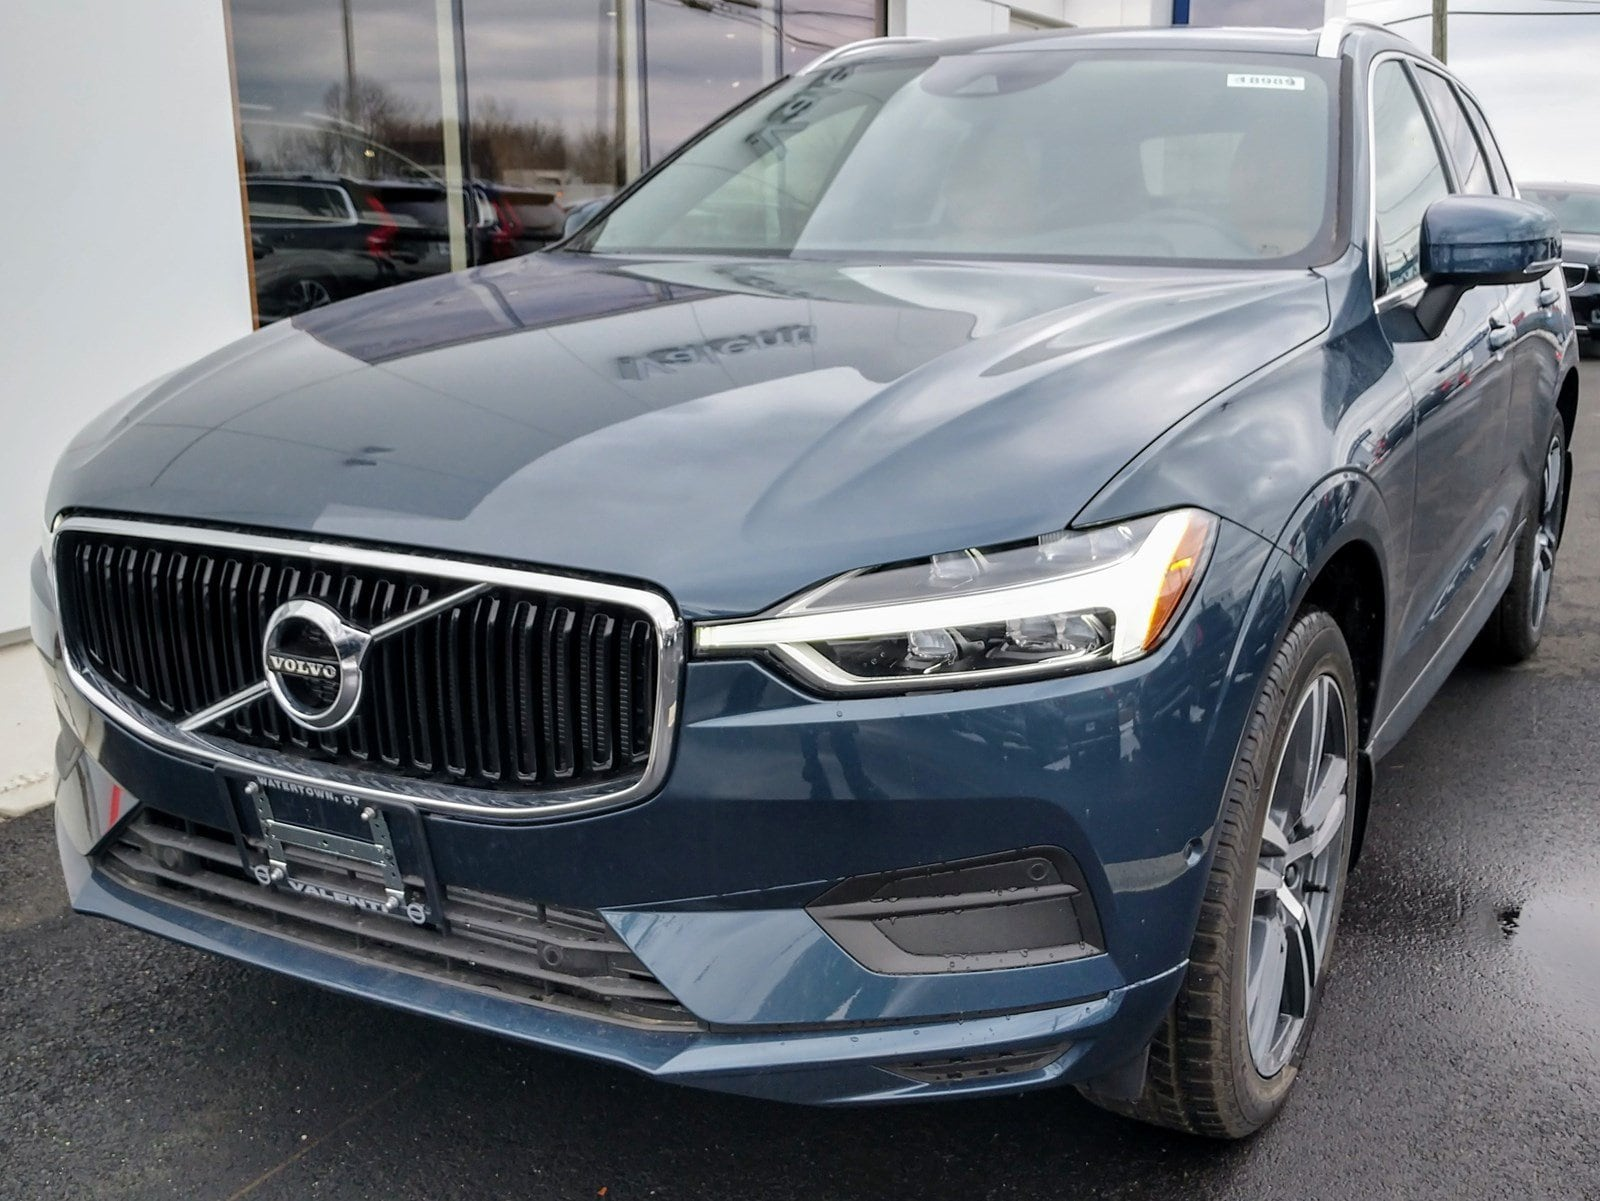 New 2019 Volvo XC60 For Sale or Lease | Watertown CT